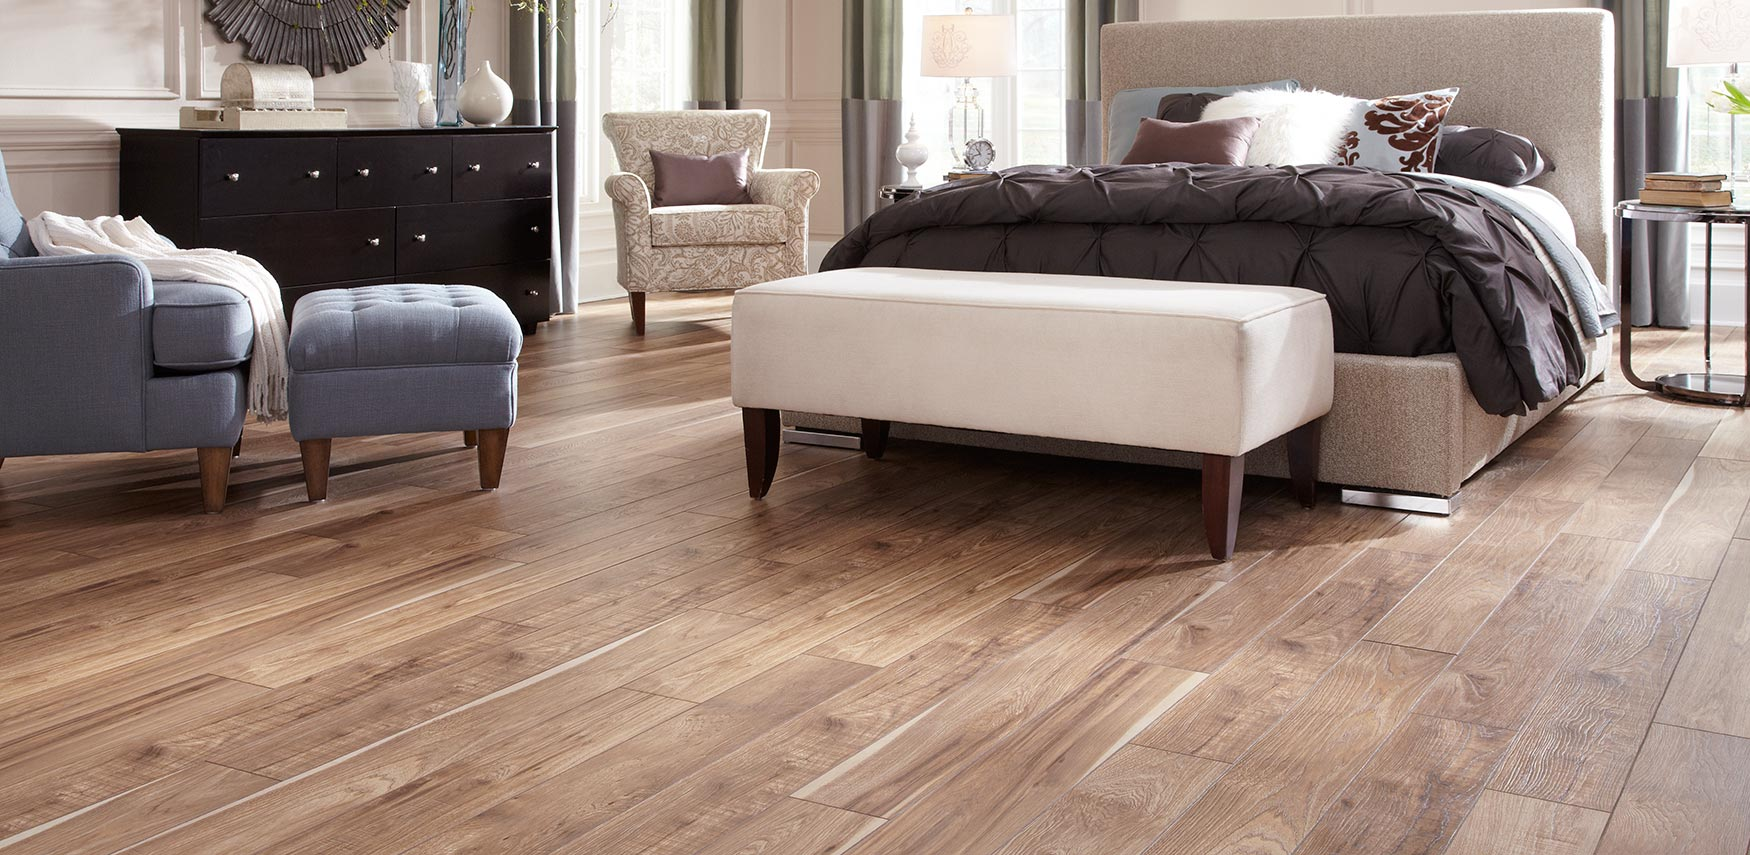 stunning about made your usa creative floor manufacturers collection in floors design top ikea flooring style home laminate remodel excellent tundra with own